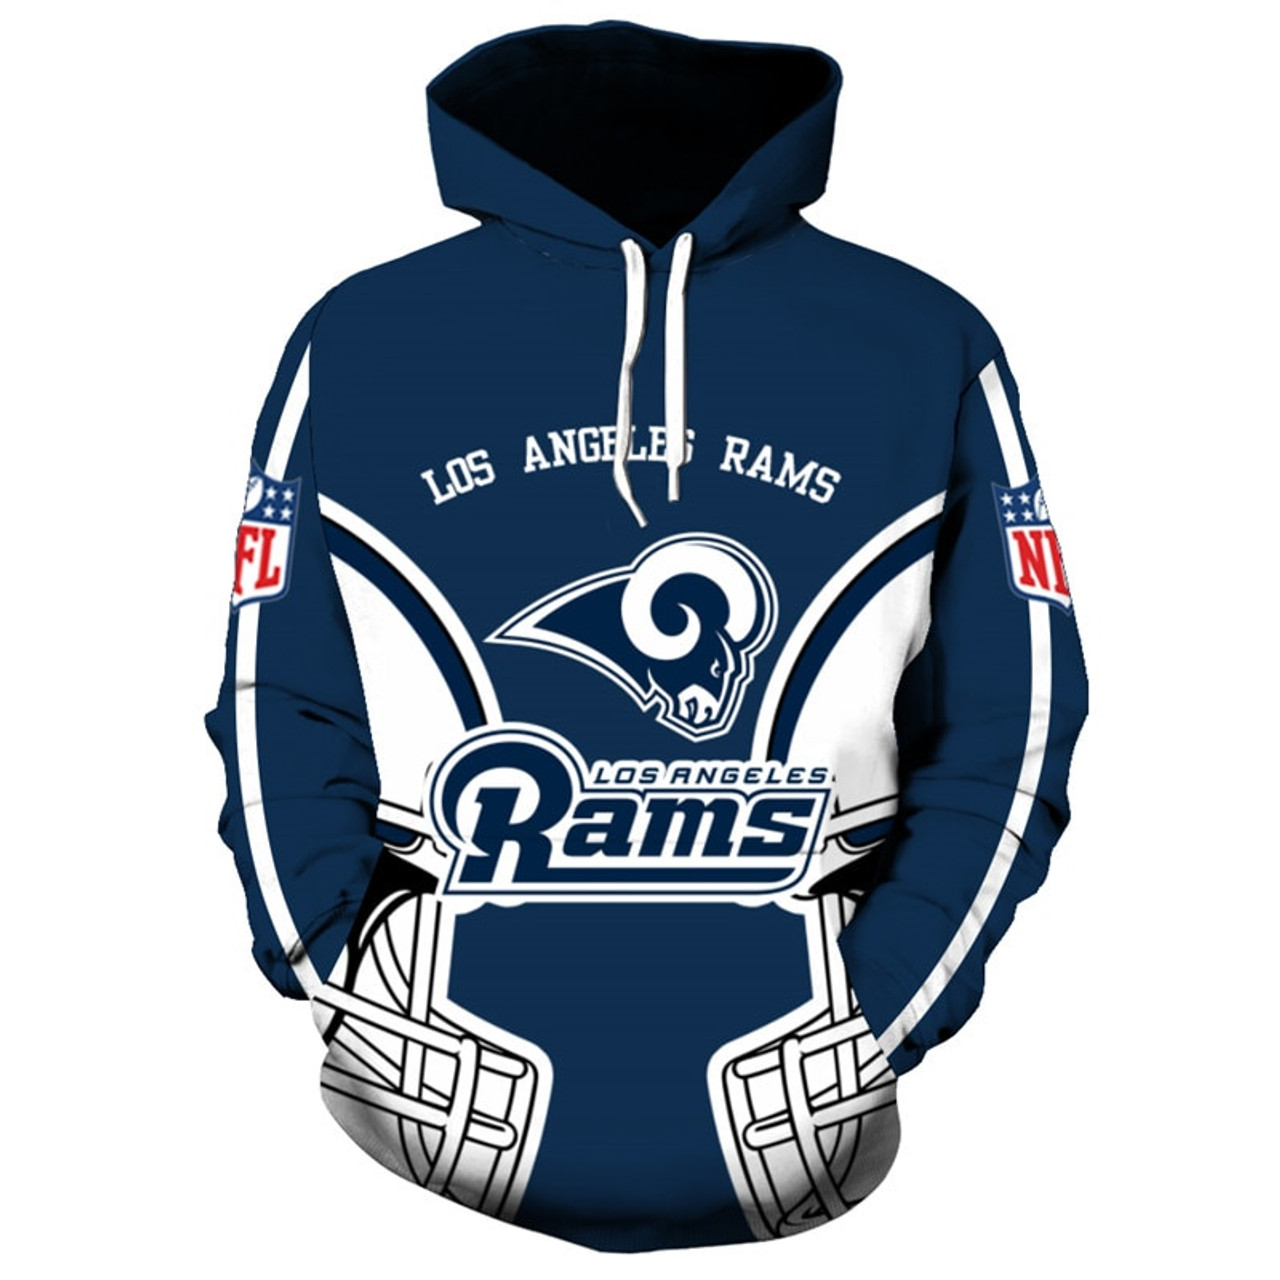 **(OFFICIALLY-LICENSED-N.F.L.LOS-ANGELES-RAMS-TRENDY-PULLOVER-TEAM-HOODIES/NICE-CUSTOM-3D-GRAPHIC-PRINTED-DOUBLE-SIDED-ALL-OVER-OFFICIAL-RAMS-LOGOS & RAMS-OFFICIAL-TEAM-COLORS/WARM-PREMIUM-OFFICIAL-N.F.L.RAMS-TEAM-PULLOVER-POCKET-HOODIES)**